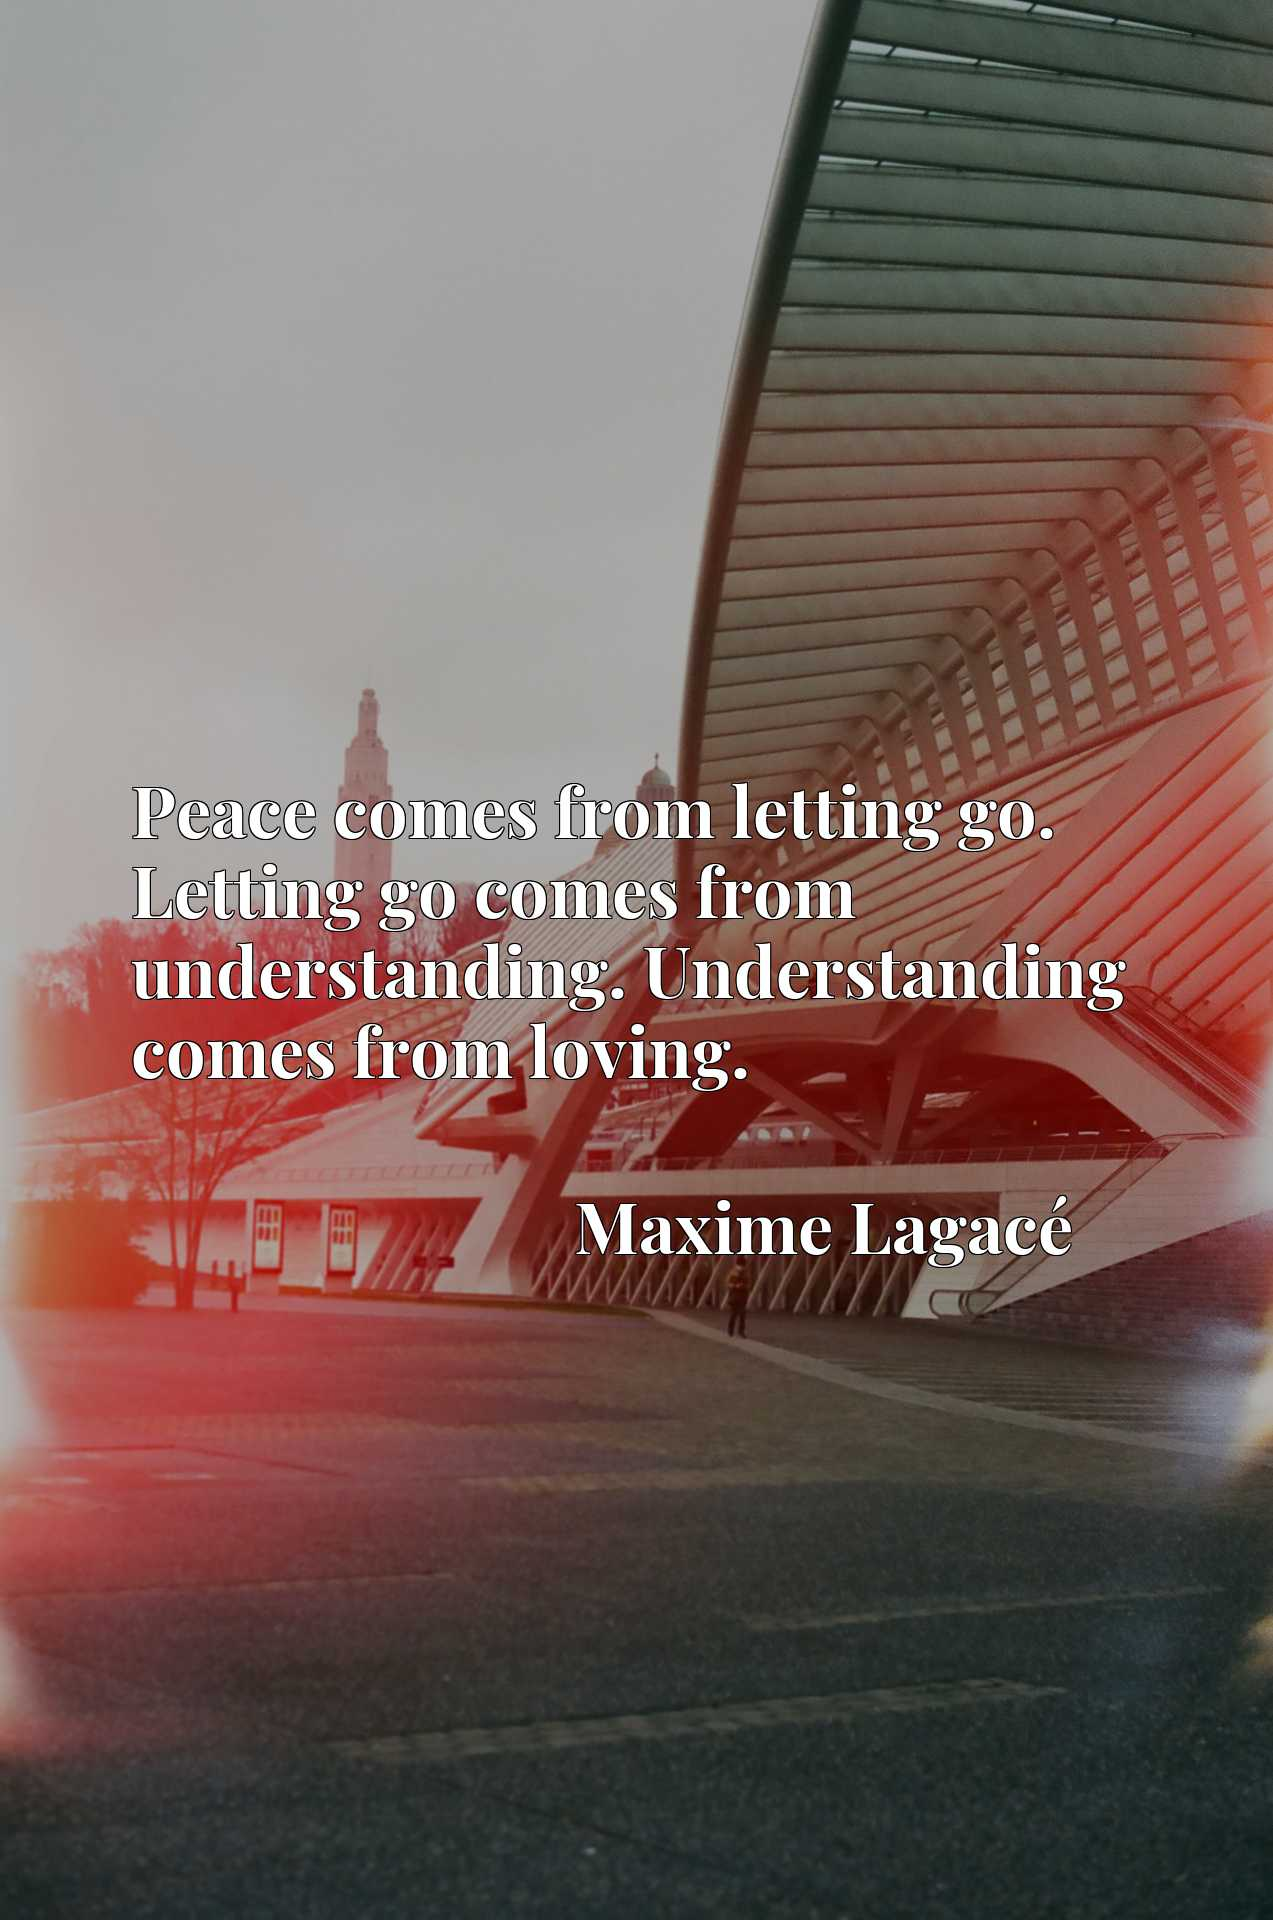 Peace comes from letting go. Letting go comes from understanding. Understanding comes from loving.